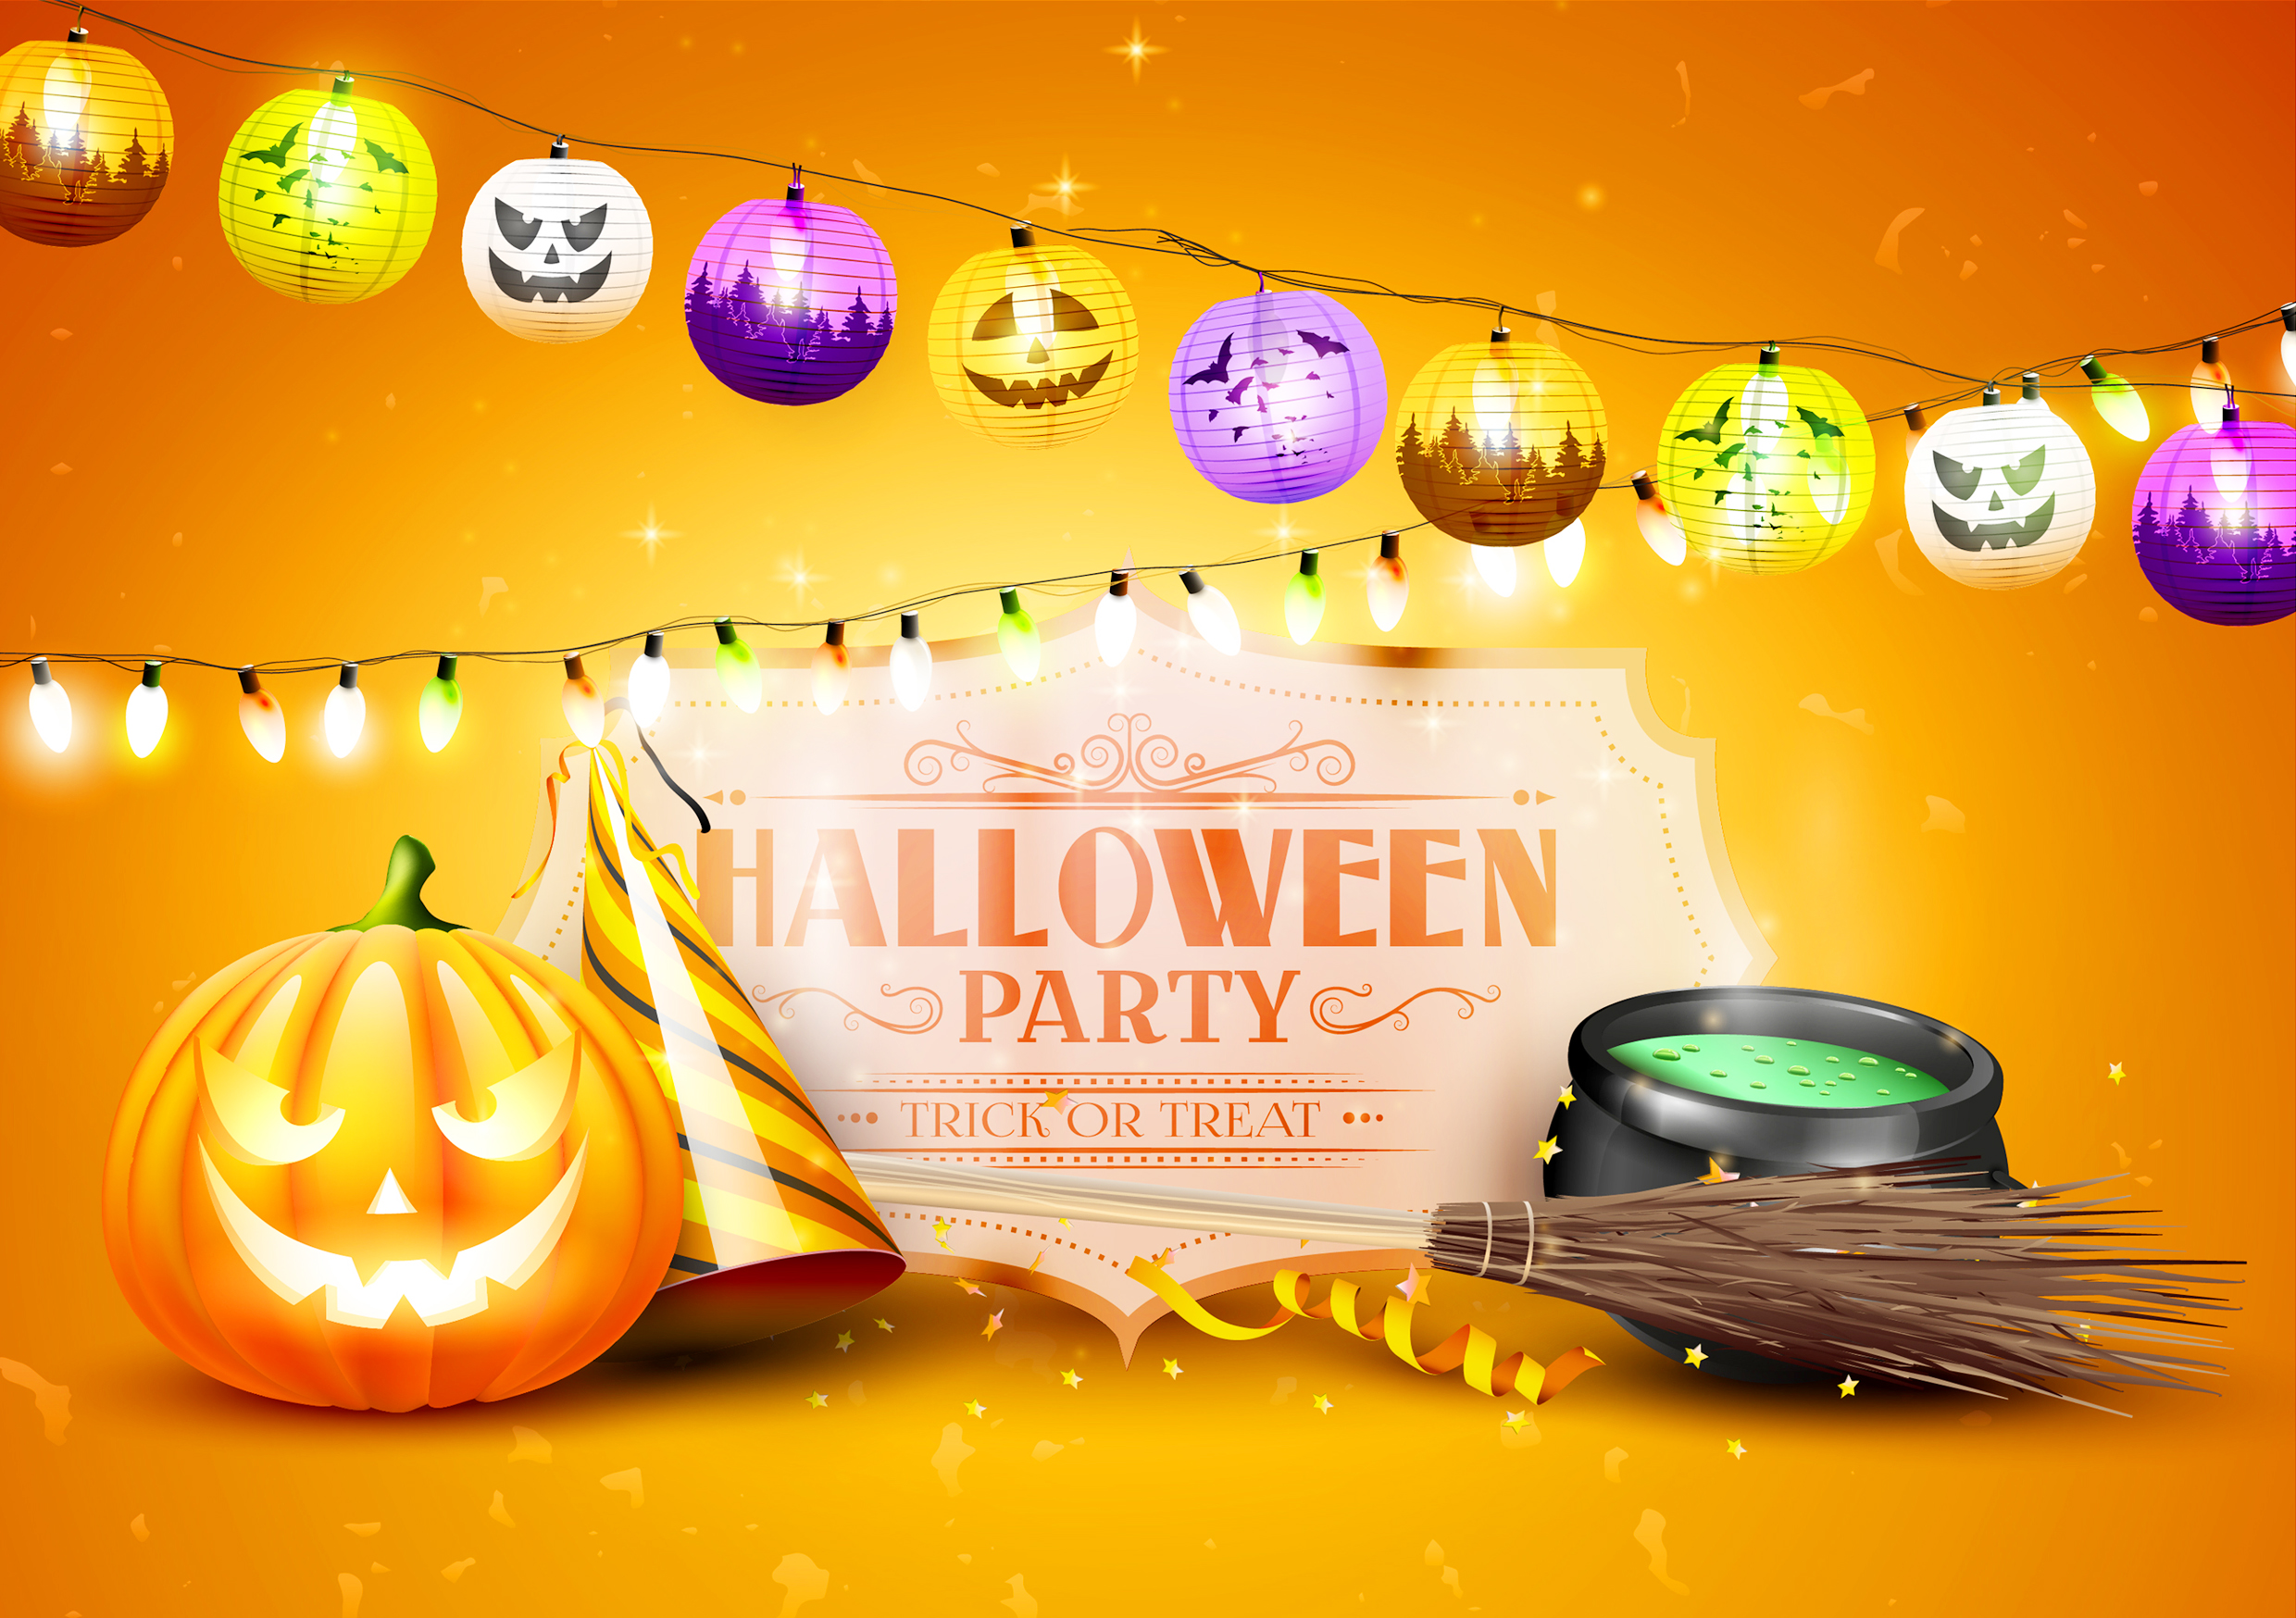 HALLOWEEN PARTY KIDS 2018